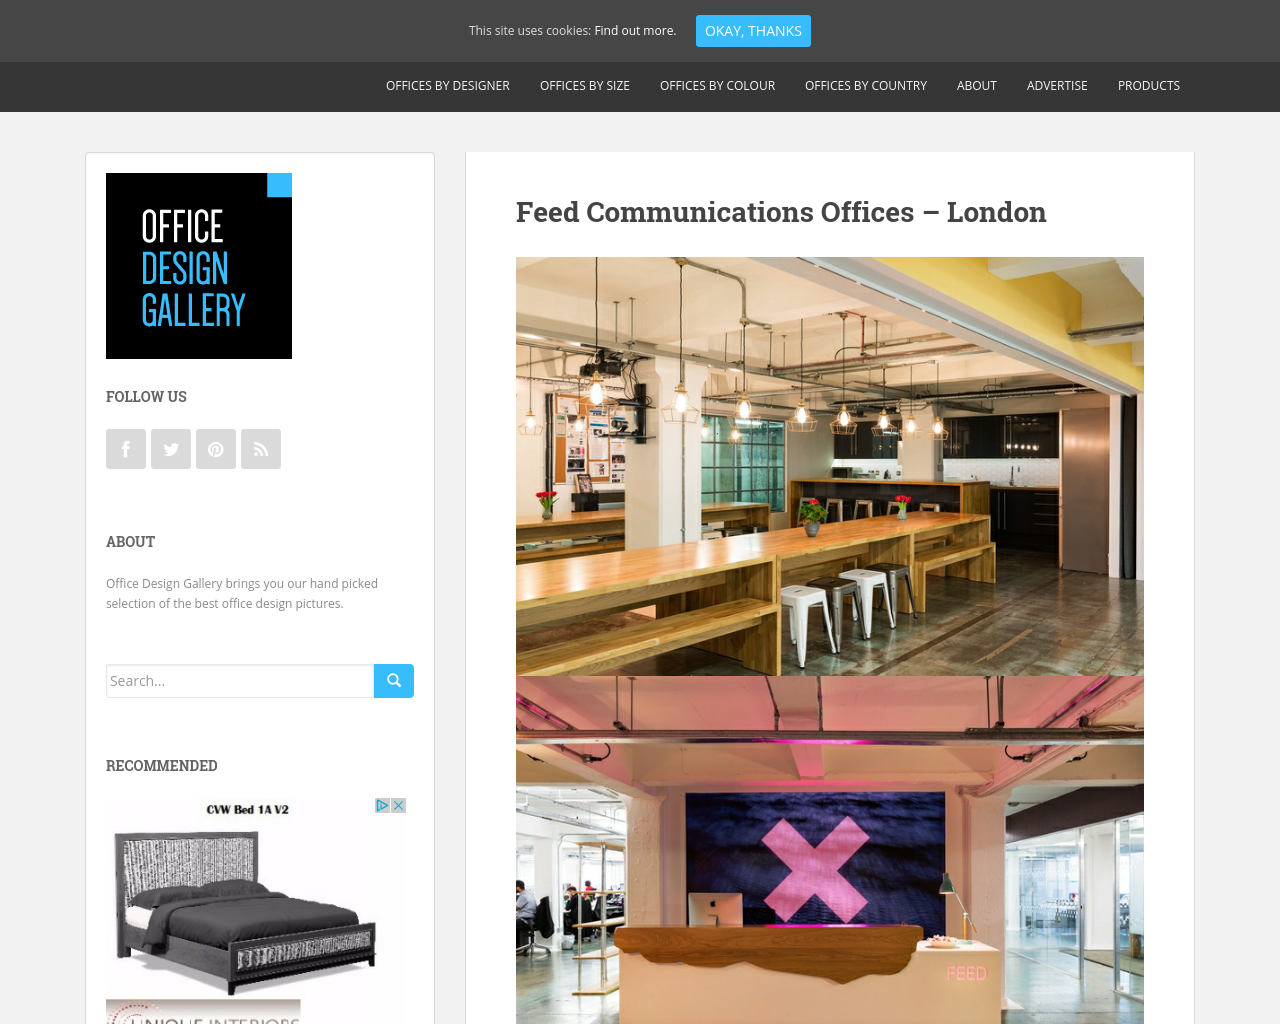 Office-Design-Gallery-Advertising-Reviews-Pricing